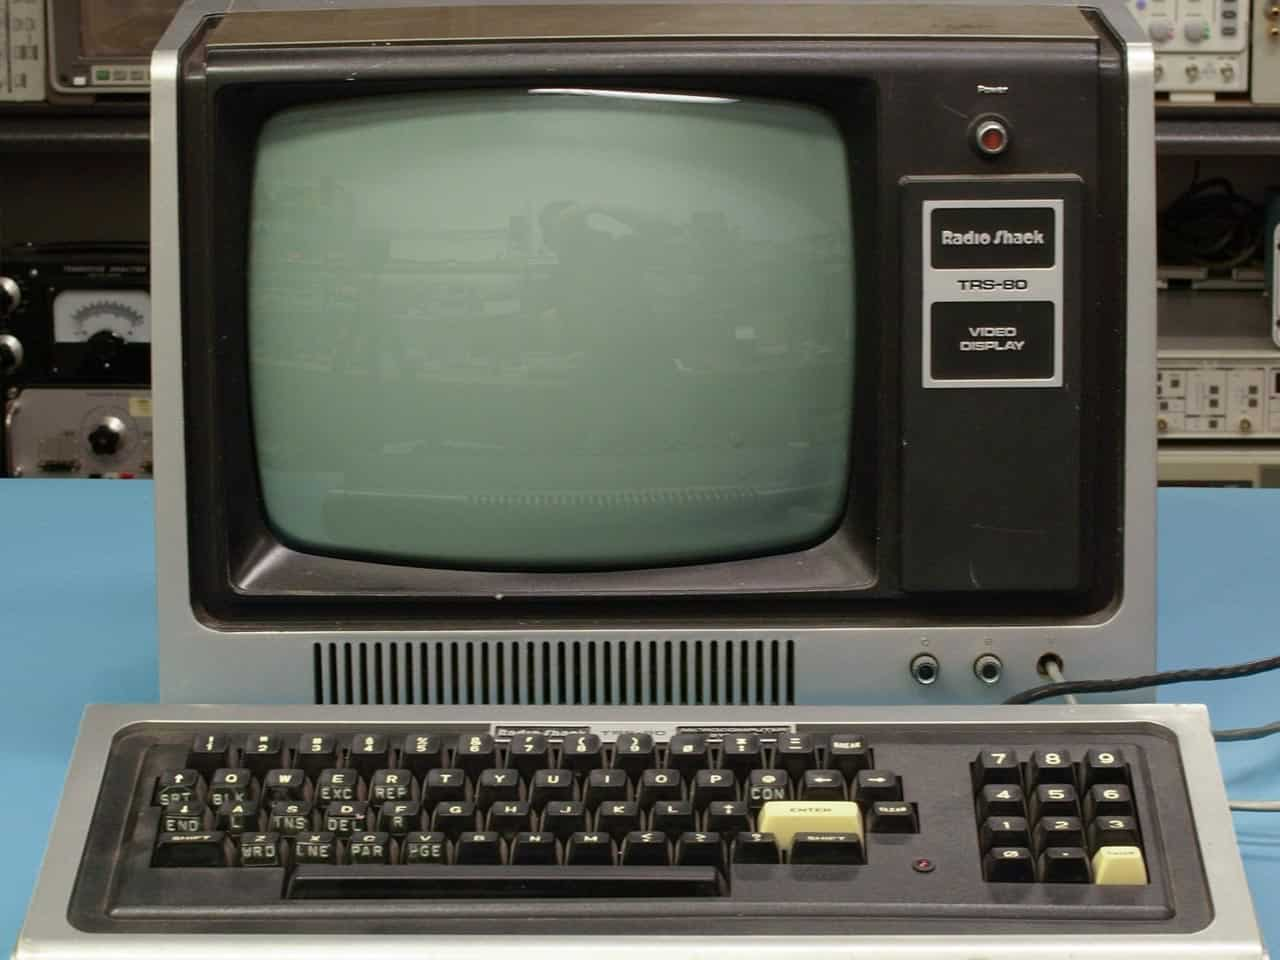 My Early Days in the Computer Revolution